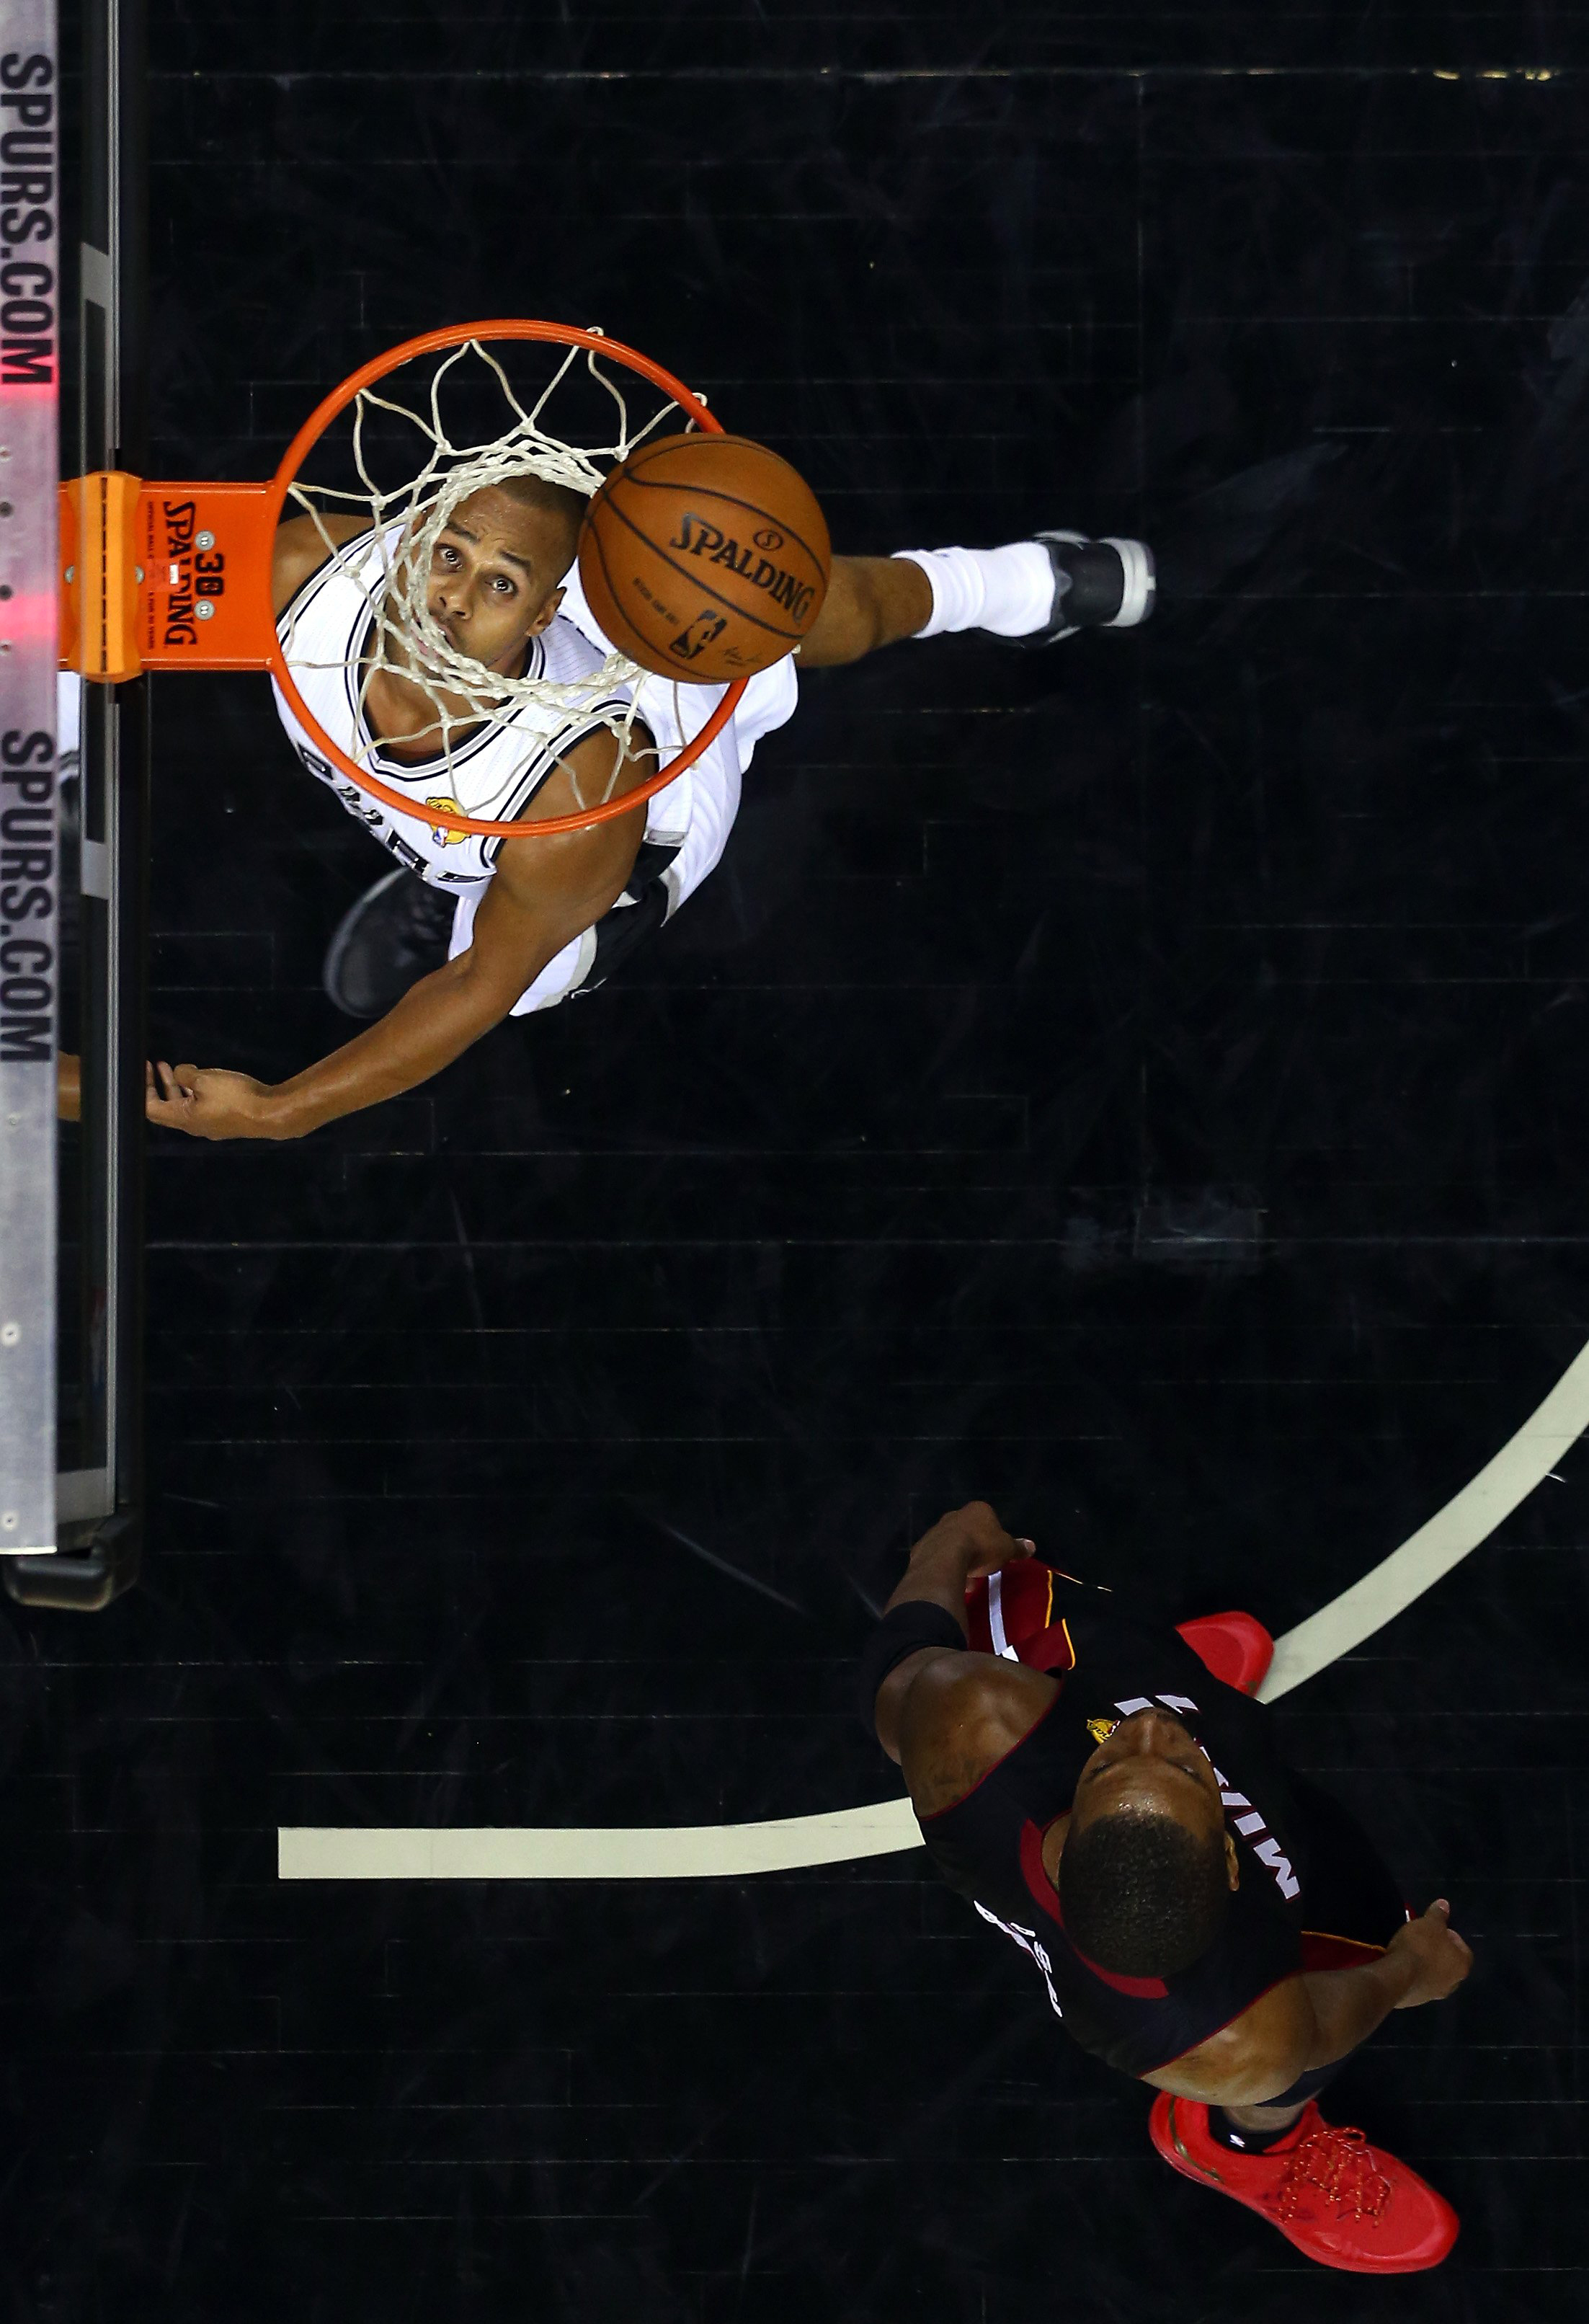 Patty Mills #8 of the San Antonio Spurs goes to the basket against the Miami Heat during Game 2 of the 2014 NBA Finals in San Antonio on June 8, 2014.